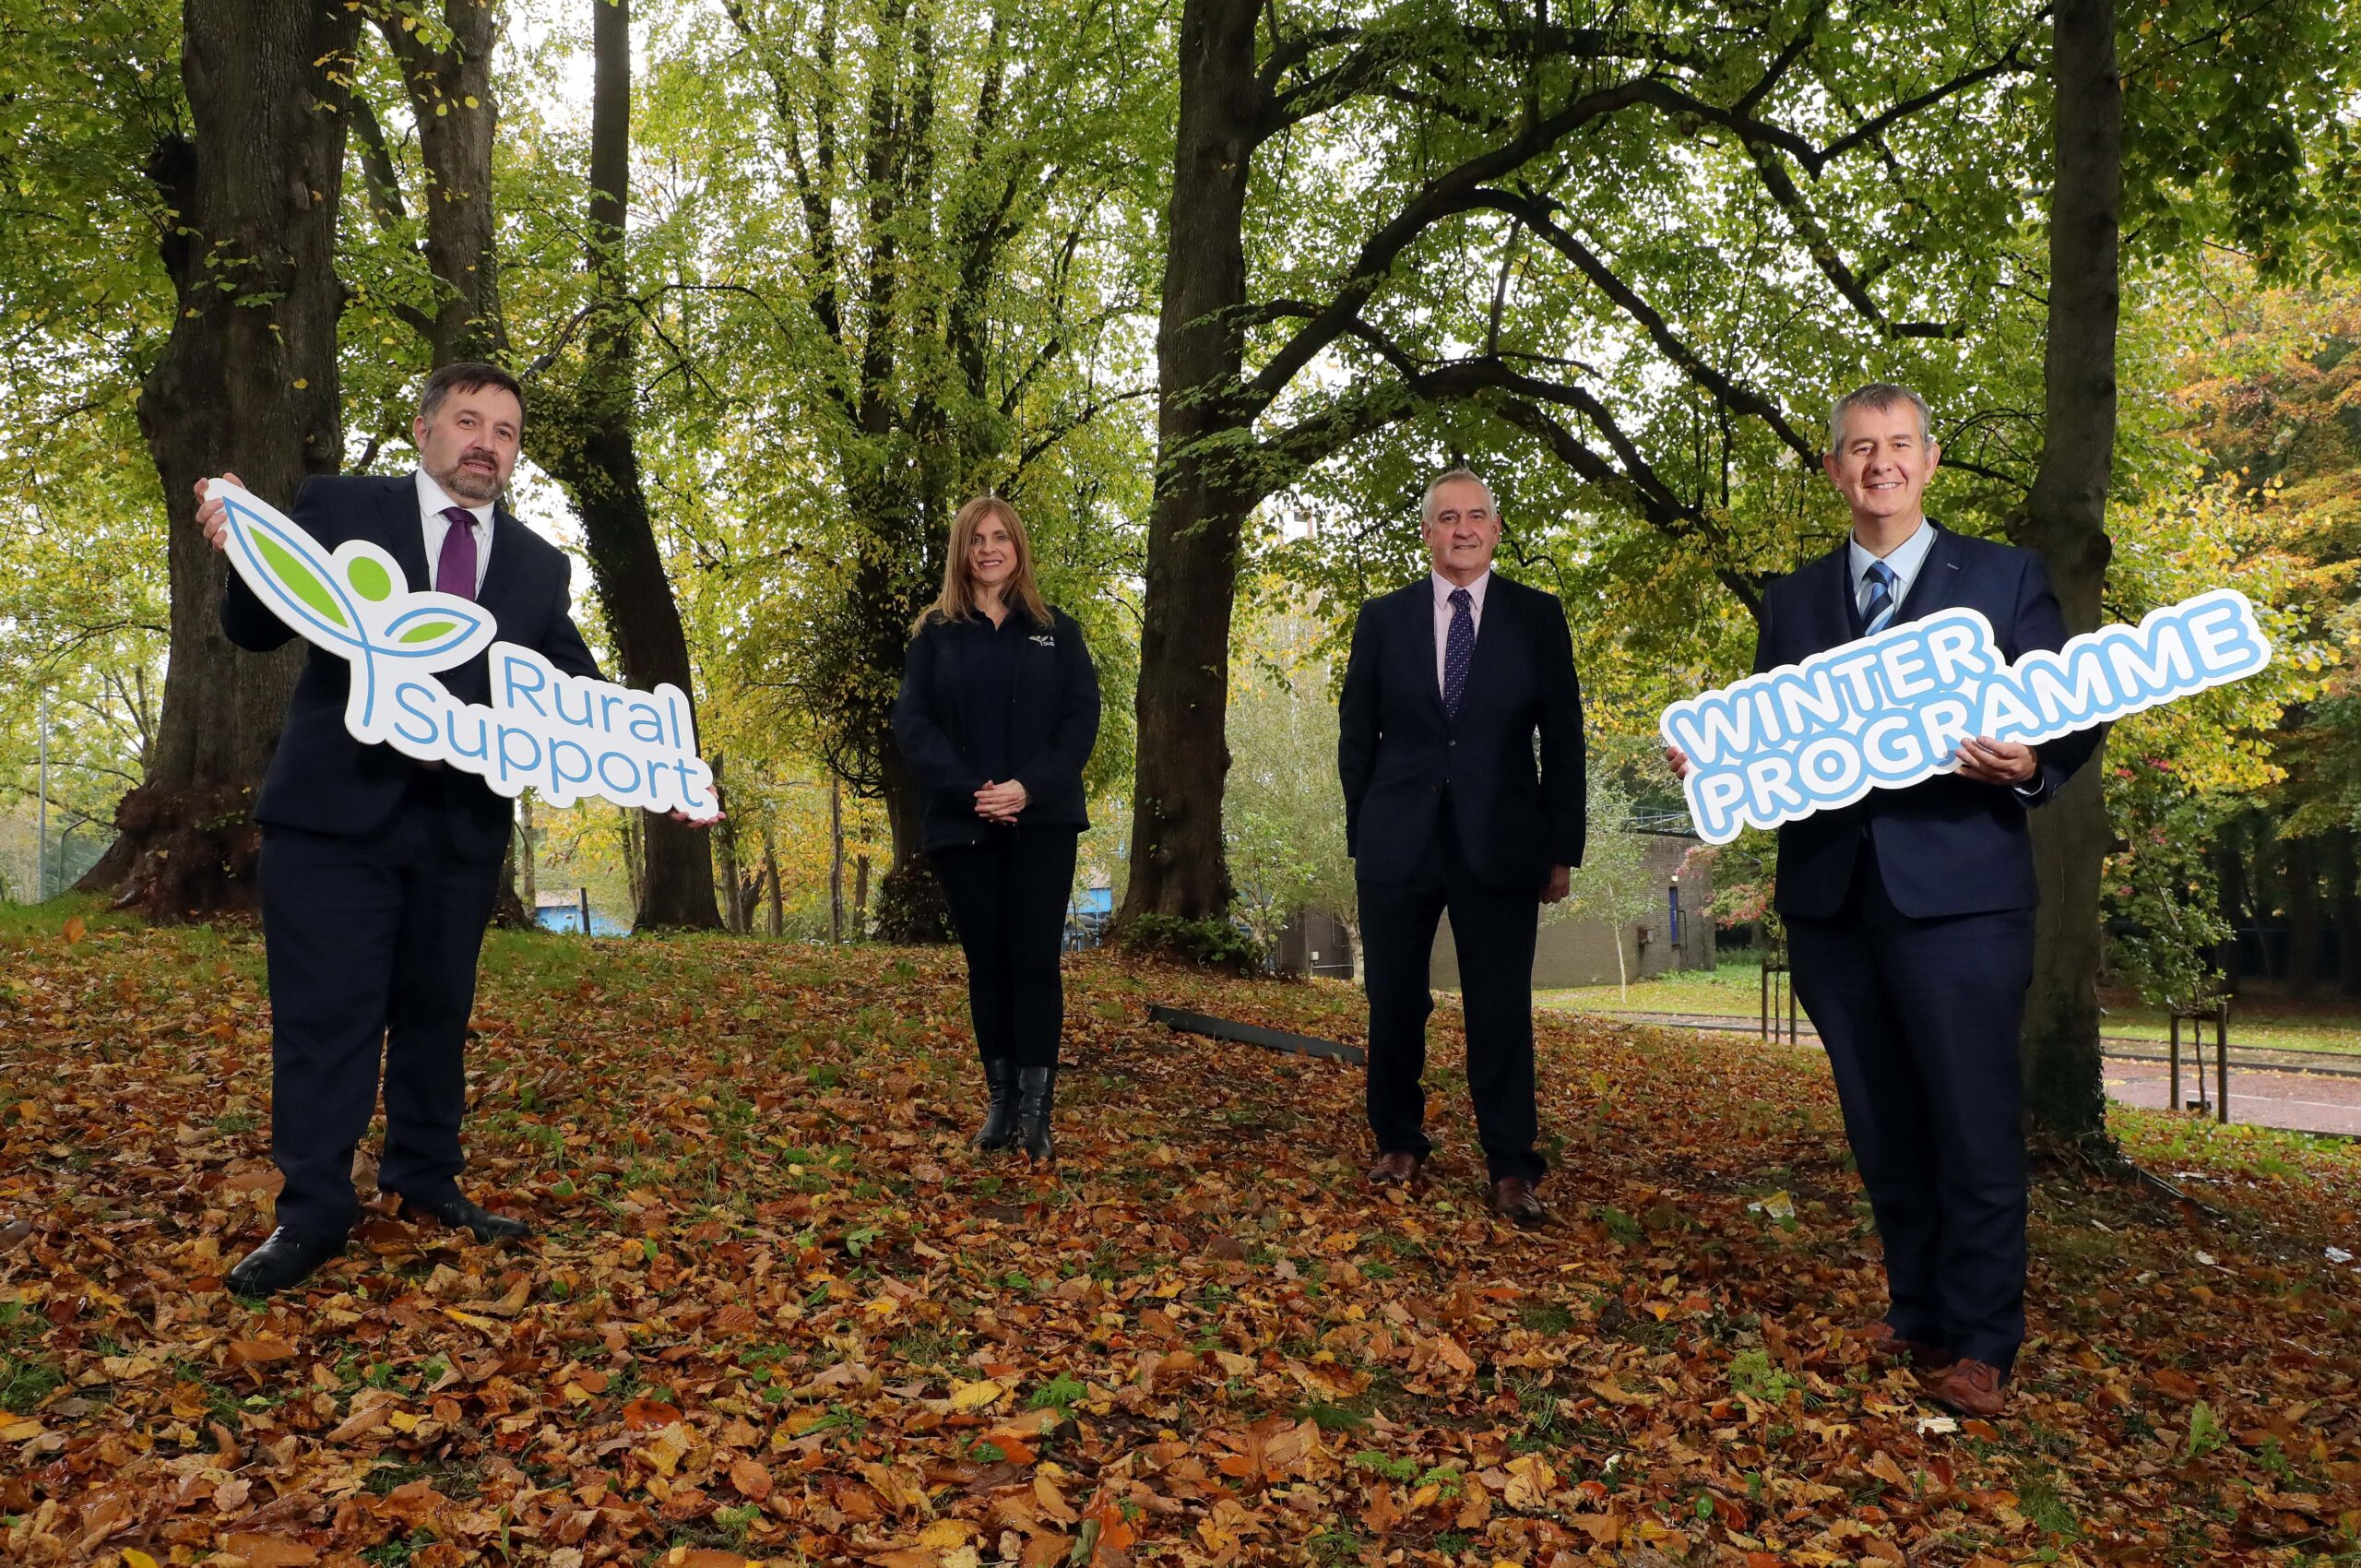 Ministers Poots and Swann Launch Rural Support's New Winter Programme - Newry Times newspaper